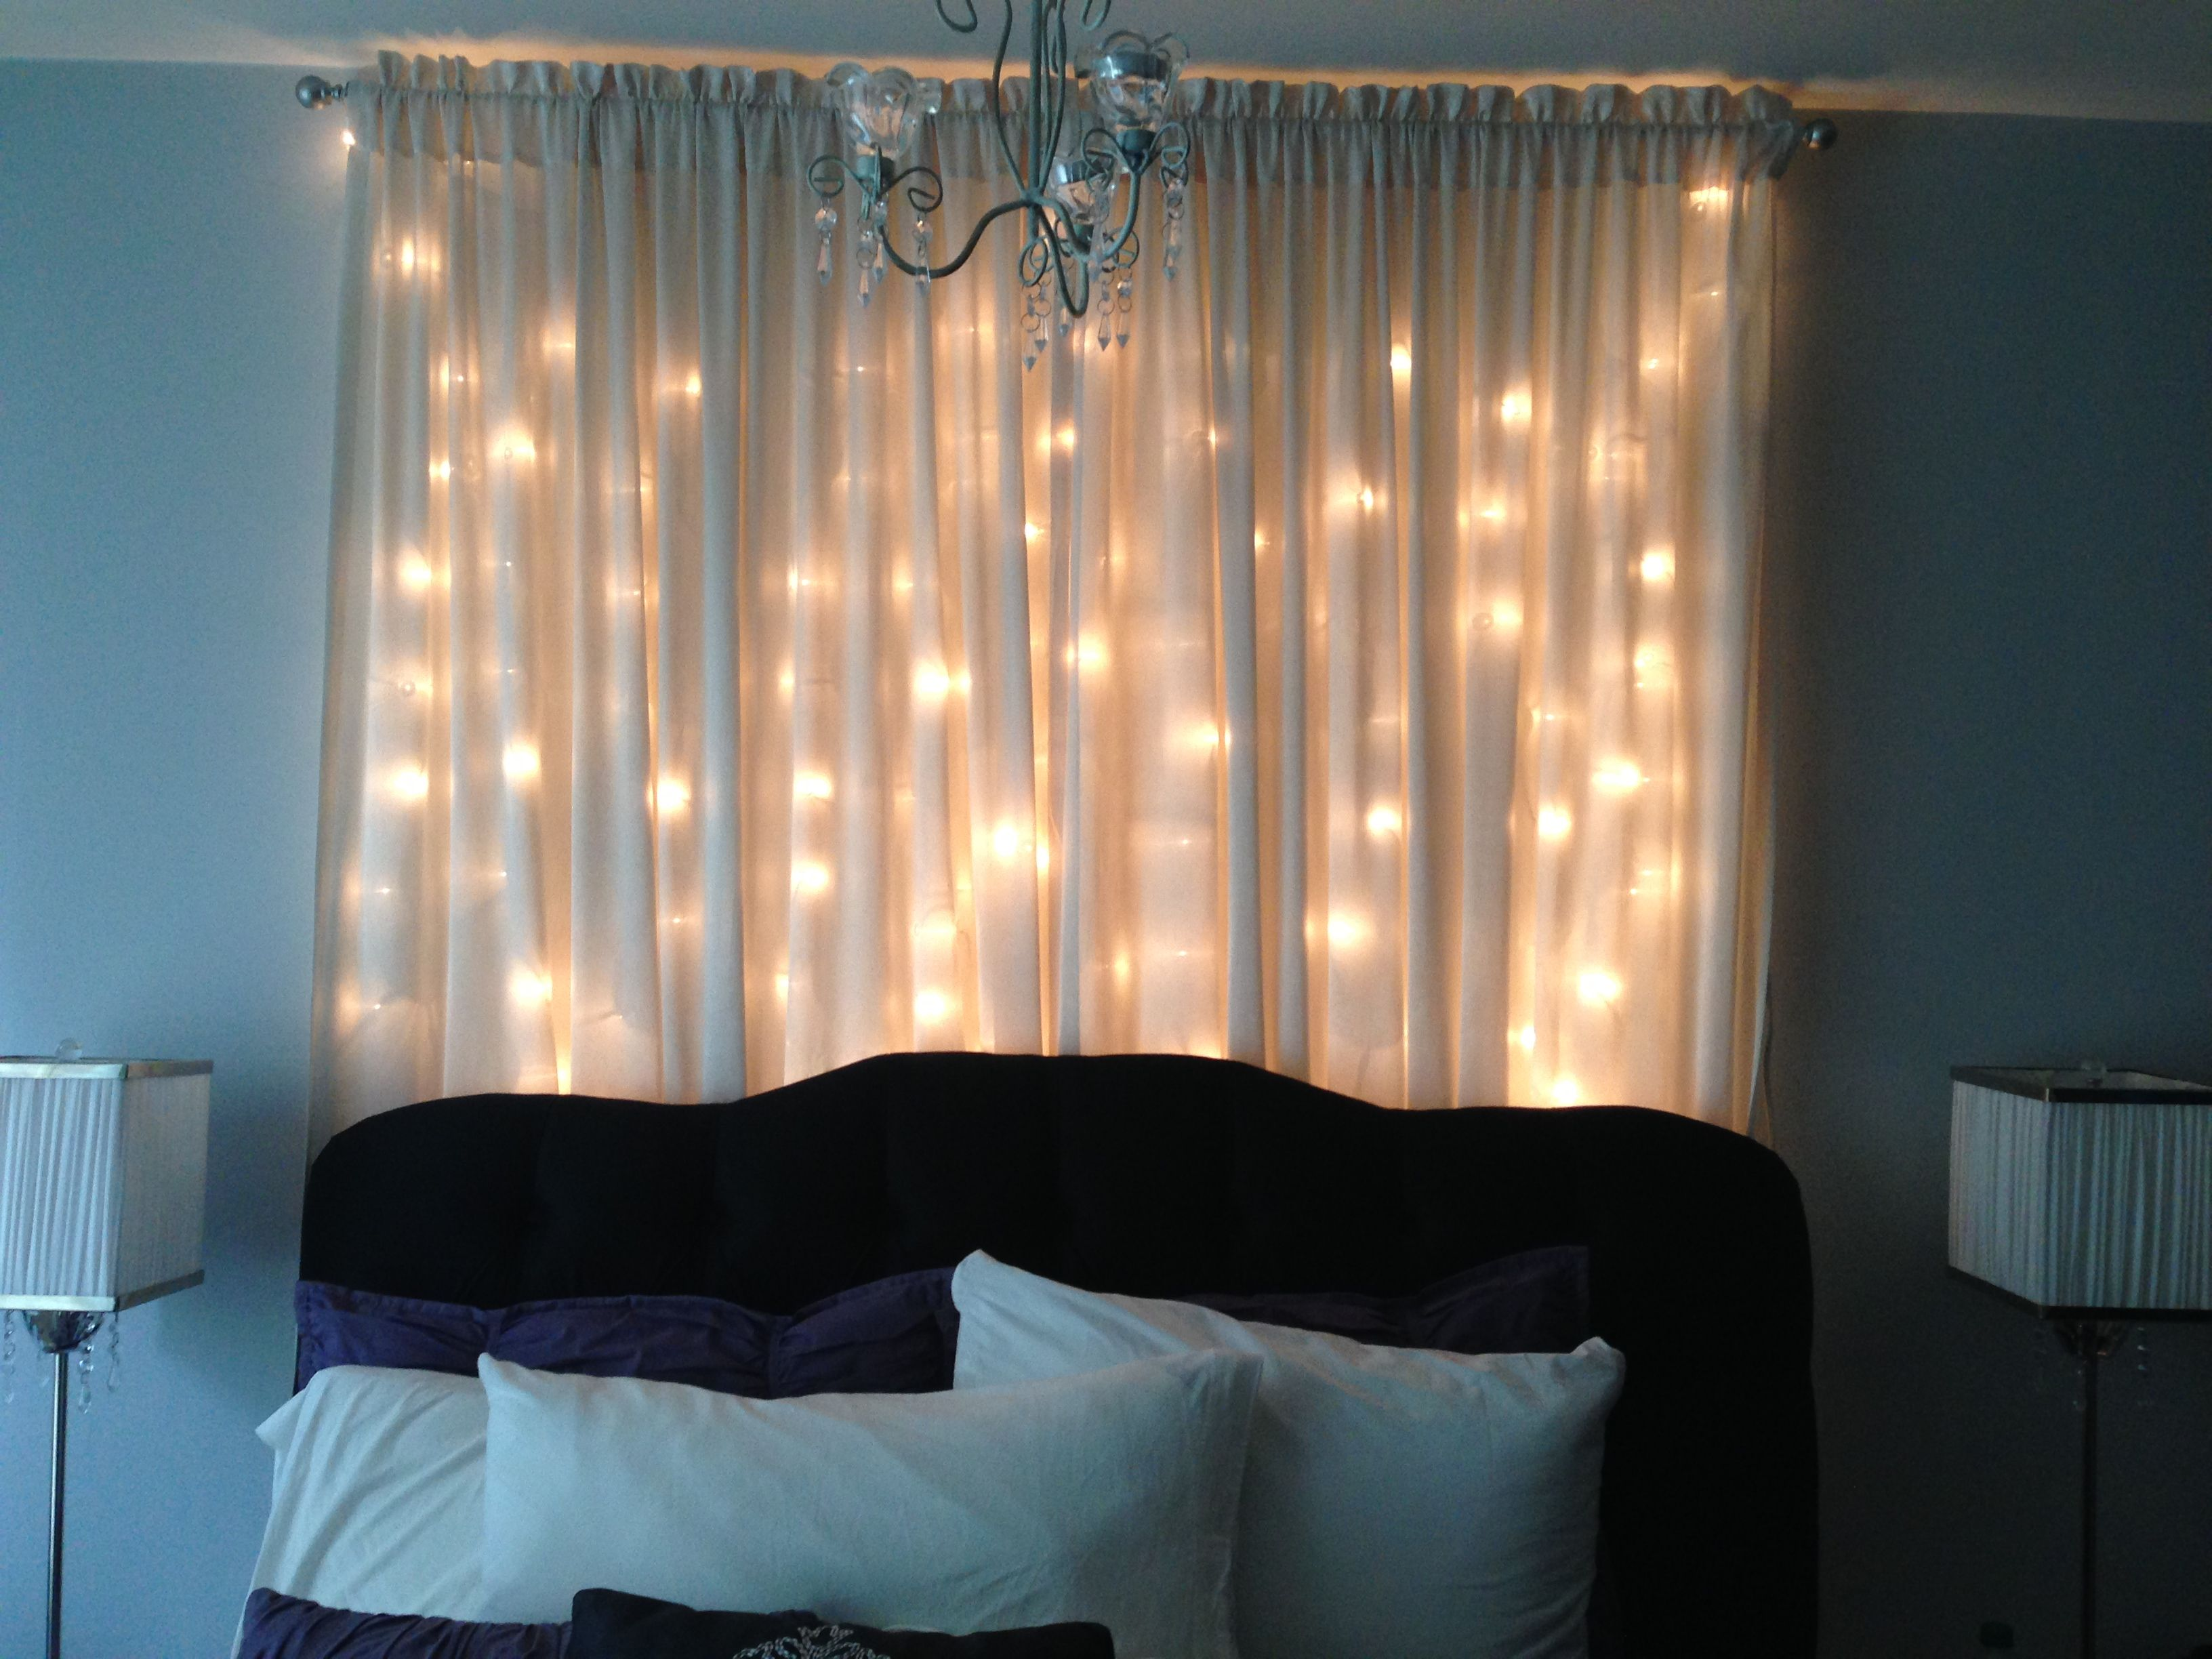 Christmas light curtain headboard bedroom ideas for 15 ideas to hang christmas lights in a bedroom